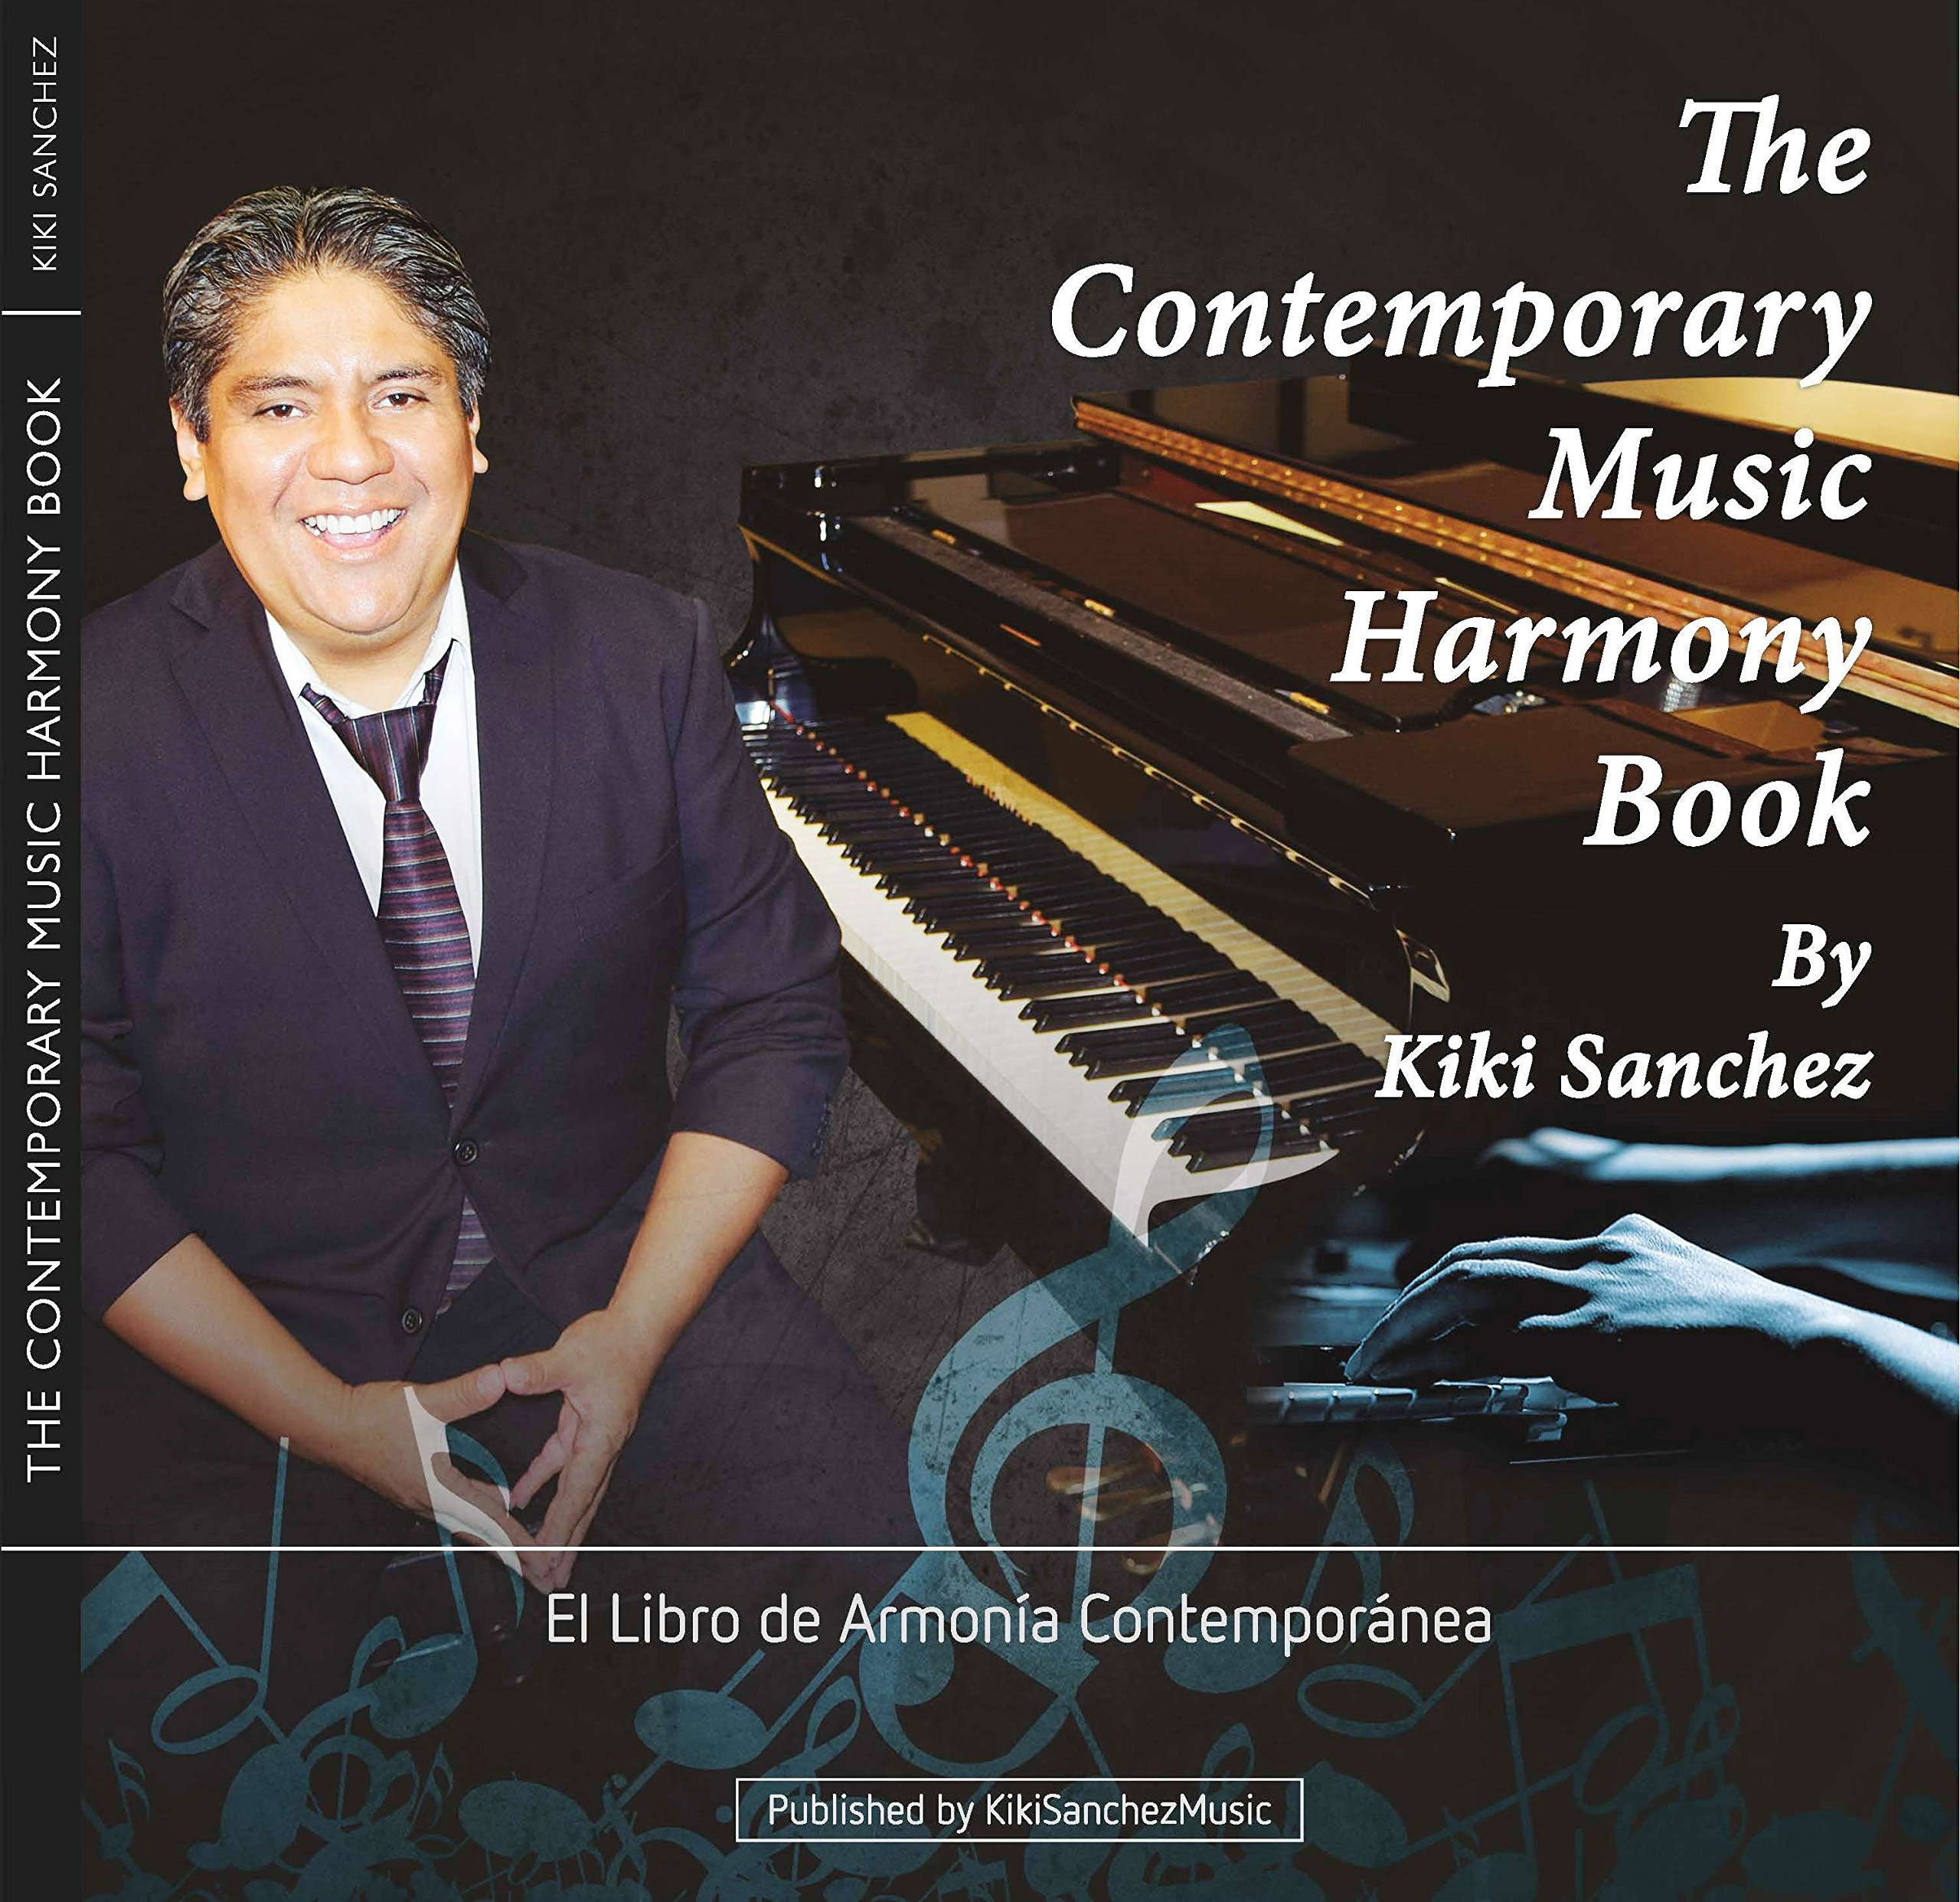 THE CONTEMPORARY MUSIC HARMONY BOOK Textbook Binding – 2017